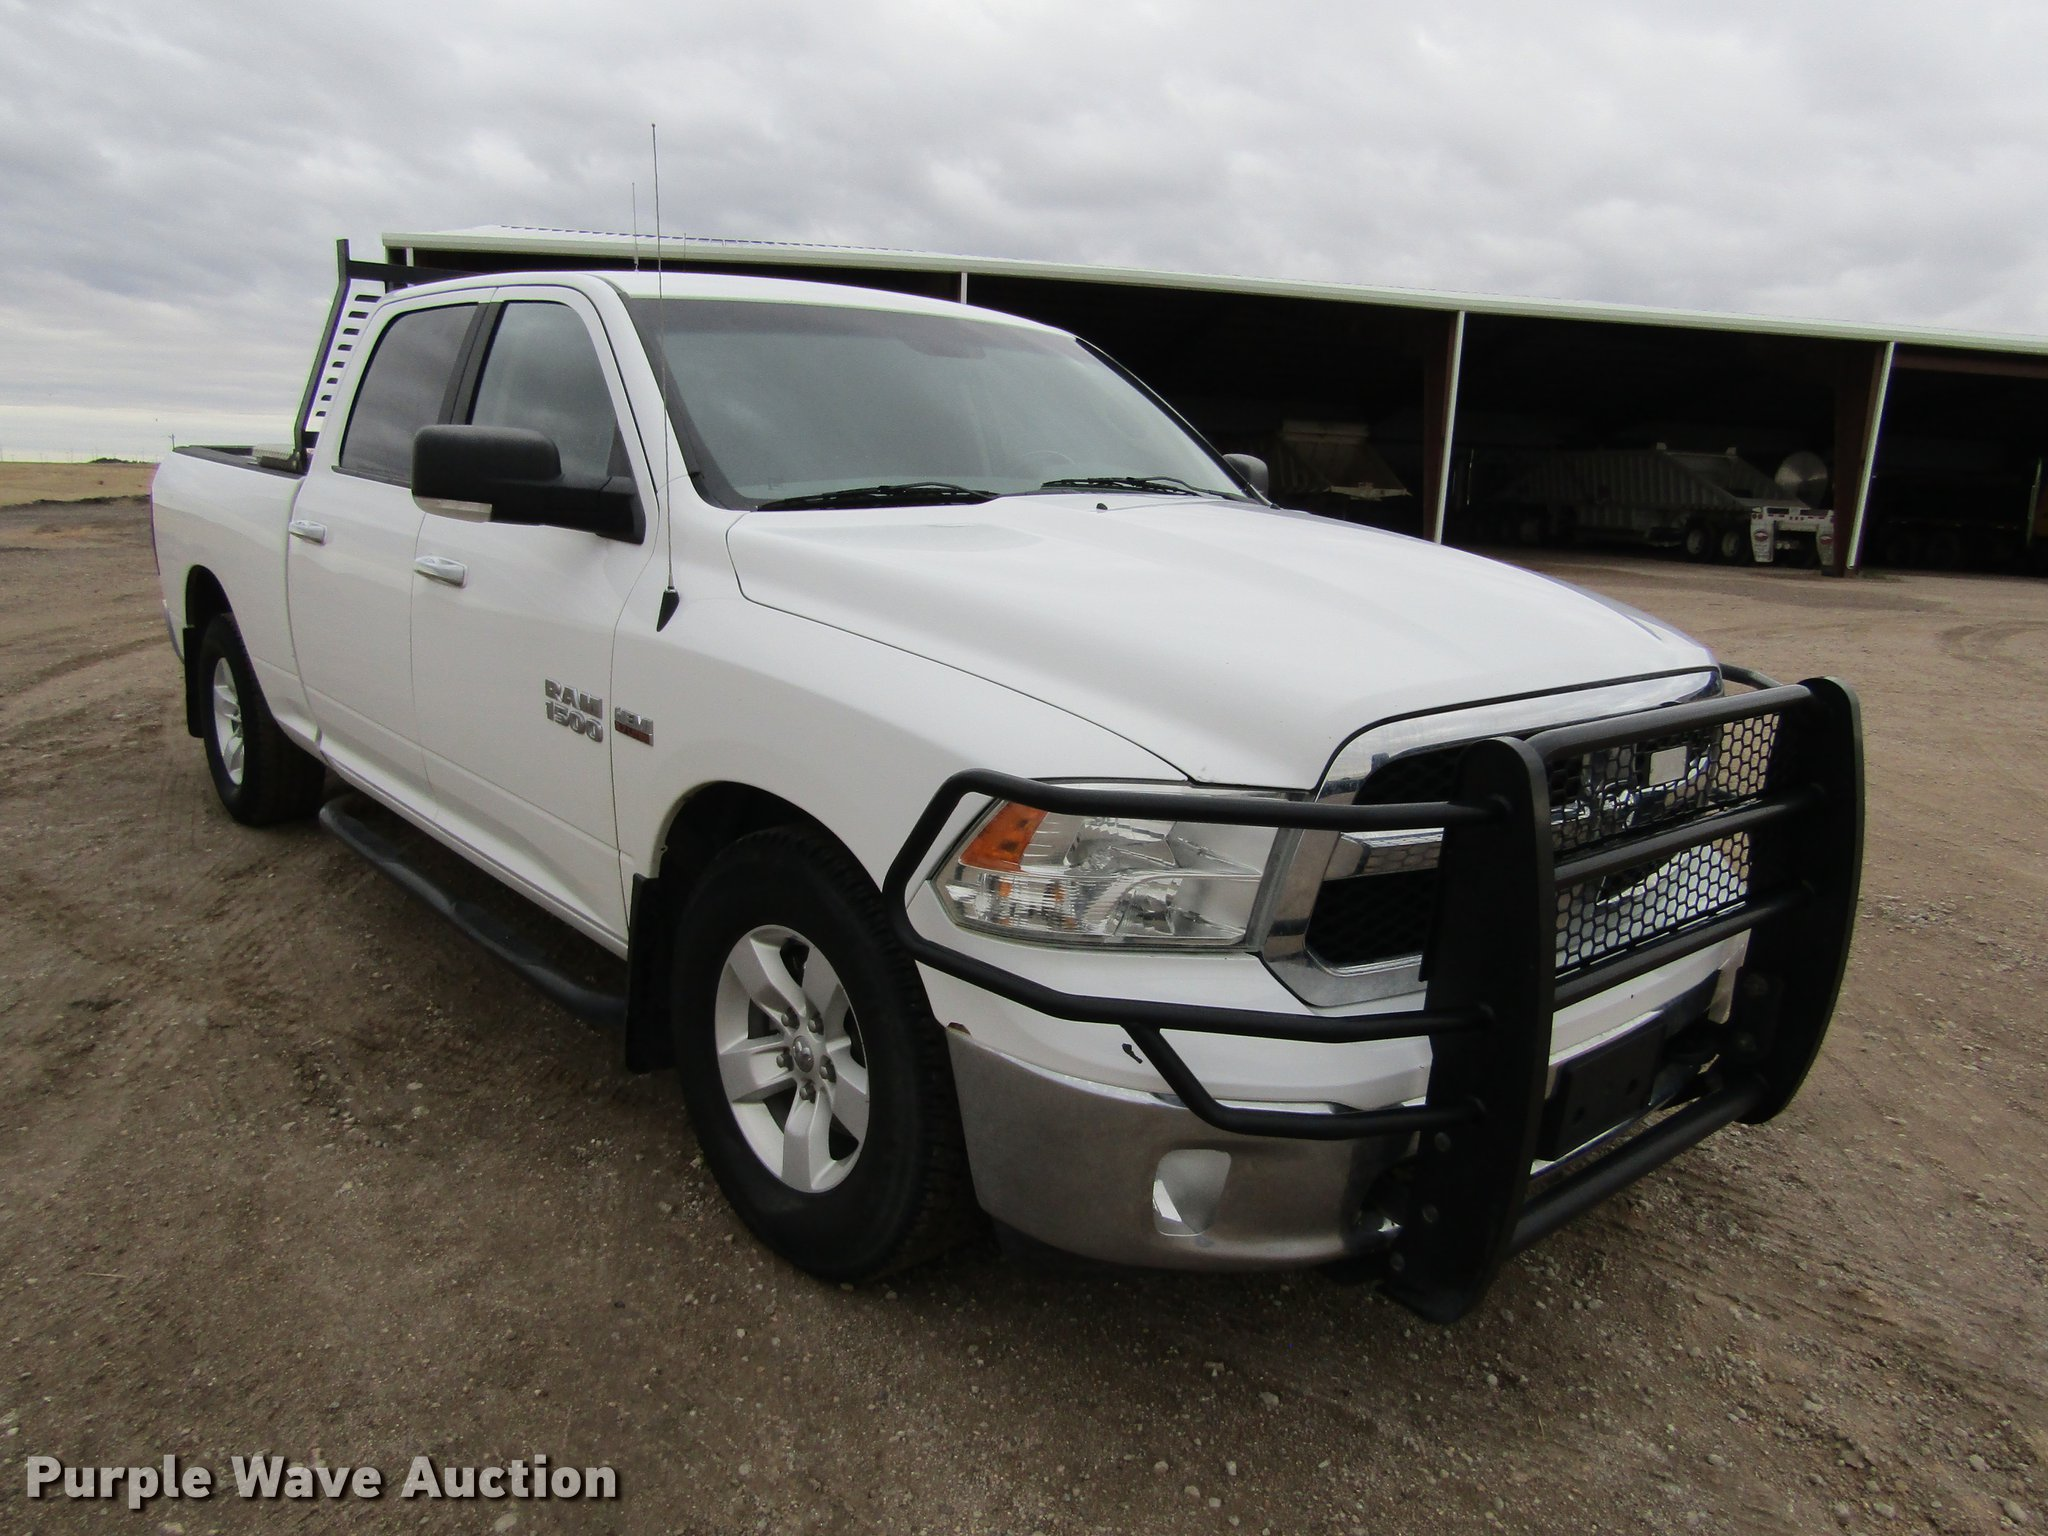 laramie towing capacity new sale pickup for inspirational ram of hemi attachment edition dodge